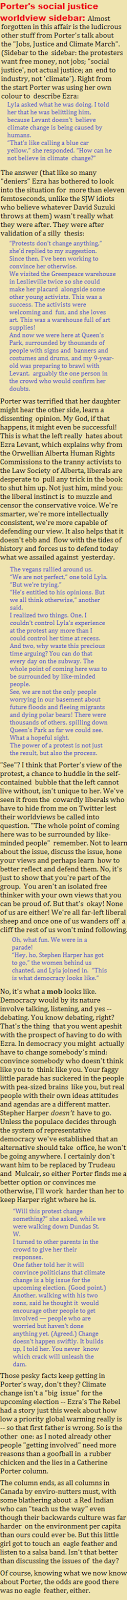 "Porters social justice worldview sidebar: Almost forgotten in this affair is the ludicrous other stuff from Porters talk about the Jobs, Justice and Climate March. (Sidebar to the sidebar: the protesters want free money, not jobs; social justice, not actual justice; an end to industry, not climate). Right from the start Porter was using her own colour to describe Ezra: Lyla asked what he was doing. I told her that he was belittling him, because Levant doesn't believe climate change is being caused by humans. That's like calling a blue car yellow, she responded. How can he not believe in climate change?"" The answer (that like so many deniers Ezra has bothered to look into the situation for more than eleven femtoseconds, unlike the SJW idiots who believe whatever David Suzuki throws at them) wasnt really what they were after. They were after validation of a silly thesis:  Protests don't change anything, she'd replied to my suggestion. Since then, I've been working to convince her otherwise. We visited the Greenpeace warehouse in Leslieville twice so she could make her placard alongside some other young activists. This was a success. The activists were welcoming and fun, and she loves art. This was a warehouse full of art supplies! And now we were here at Queen's Park, surrounded by thousands of people with signs and banners and costumes and drums, and my 9-year-old was preparing to brawl with Levant, arguably the one person in the crowd who would confirm her doubts. Porter was terrified that her daughter might hear the other side, learn a dissenting opinion. My God, if that happens, it might even be successful! This is what the left really hates about Ezra Levant, which explains why from the Orwellian Alberta Human Rights Commissions to the tranny activists to the Law Society of Alberta, liberals are desperate to pull any trick in the book to shut him up. Not just him, mind you: the liberal instinct is to muzzle and censor the conservative voice. Were smarter, were more intellectually consistent, were more capable of defending our view. It also helps that it doesnt ebb and flow with the tides of history and forces us to defend today what we assailed against yesterday. The vegans rallied around us. We are not perfect, one told Lyla. But we're trying. He's entitled to his opinions. But we all think otherwise, another said. I realized two things. One, I couldn't control Lyla's experience at the protest any more than I could control her time at recess. And two, why waste this precious time arguing? You can do that every day on the subway. The whole point of coming here was to be surrounded by like-minded people. See, we are not the only people worrying in our basement about future floods and fleeing migrants and dying polar bears! There were thousands of others, spilling down Queen's Park as far we could see. What a hopeful sight. The power of a protest is not just the result, but also the process. See? I think that Porters view of the protest, a chance to huddle in the self-contained bubble that the left cannot live without, isnt unique to her. Weve seen it from the cowardly liberals who have to hide from me on Twitter lest their worldviews be called into question. The whole point of coming here was to be surrounded by like-minded people remember. Not to learn about the issue, discuss the issue, hone your views and perhaps learn how to better reflect and defend them. No, its just to show that youre part of the group. You arent an isolated free thinker with your own views that you can be proud of. But thats okay! None of us are either! Were all far-left liberal sheep and once one of us wanders off a cliff the rest of us wont mind following. Oh, what fun. We were in a parade! Hey, ho, Stephen Harper has got to go, the women behind us chanted, and Lyla joined in. This is what democracy looks like. No, its what a mob looks like. Democracy would by its nature involve talking, listening, and yes -- debating. You know debating, right? Thats the thing that you went apeshit with the prospect of having to do with Ezra. In democracy you might actually have to change somebodys mind: convince somebody who doesnt think like you to think like you. Your faggy little parade has suckered in the people with pea-sized brains like you, but real people with their own ideas attitudes and agendas are a different matter. Stepher Harper doesnt have to go. Unless the populace decides through the system of representative democracy weve established that an alternative should take office, he wont be going anywhere. I certainly dont want him to be replaced by Trudeau and Mulcair, so either Porter finds me a better option or convinces me otherwise, Ill work harder than her to keep Harper right where he is. Will this protest change something? she asked, while we were walking down Dundas St. W. I turned to other parents in the crowd to give her their responses. One father told her it will convince politicians that climate change is a big issue for the upcoming election. (Good point.) Another, walking with his two sons, said he thought it would encourage other people to get involved — people who are worried but haven't done anything yet. (Agreed.) Change doesn't happen swiftly. It builds up, I told her. You never know which crack will unleash the dam. Those pesky facts keep getting in Porters way, dont they? Climate change isnt a big issue for the upcoming election -- Ezras The Rebel had a story just this week about how low a priority global warming really is -- so that first father is wrong. So is the other one: as I noted already other people getting involved need more reasons than a goofball in a rubber chicken and the lies in a Catherine Porter column. The column ends, as all columns in Canada by enviro-nutters must, with some blathering about a Red Indian who can teach us the way even though their backwards culture was far harder on the environment per capita than ours could ever be. But this little girl got to touch an eagle feather and listen to a salsa band. Isnt that better than discussing the issues of the day? Of course, knowing what we now know about Porter, the odds are good there was no eagle feather, either."